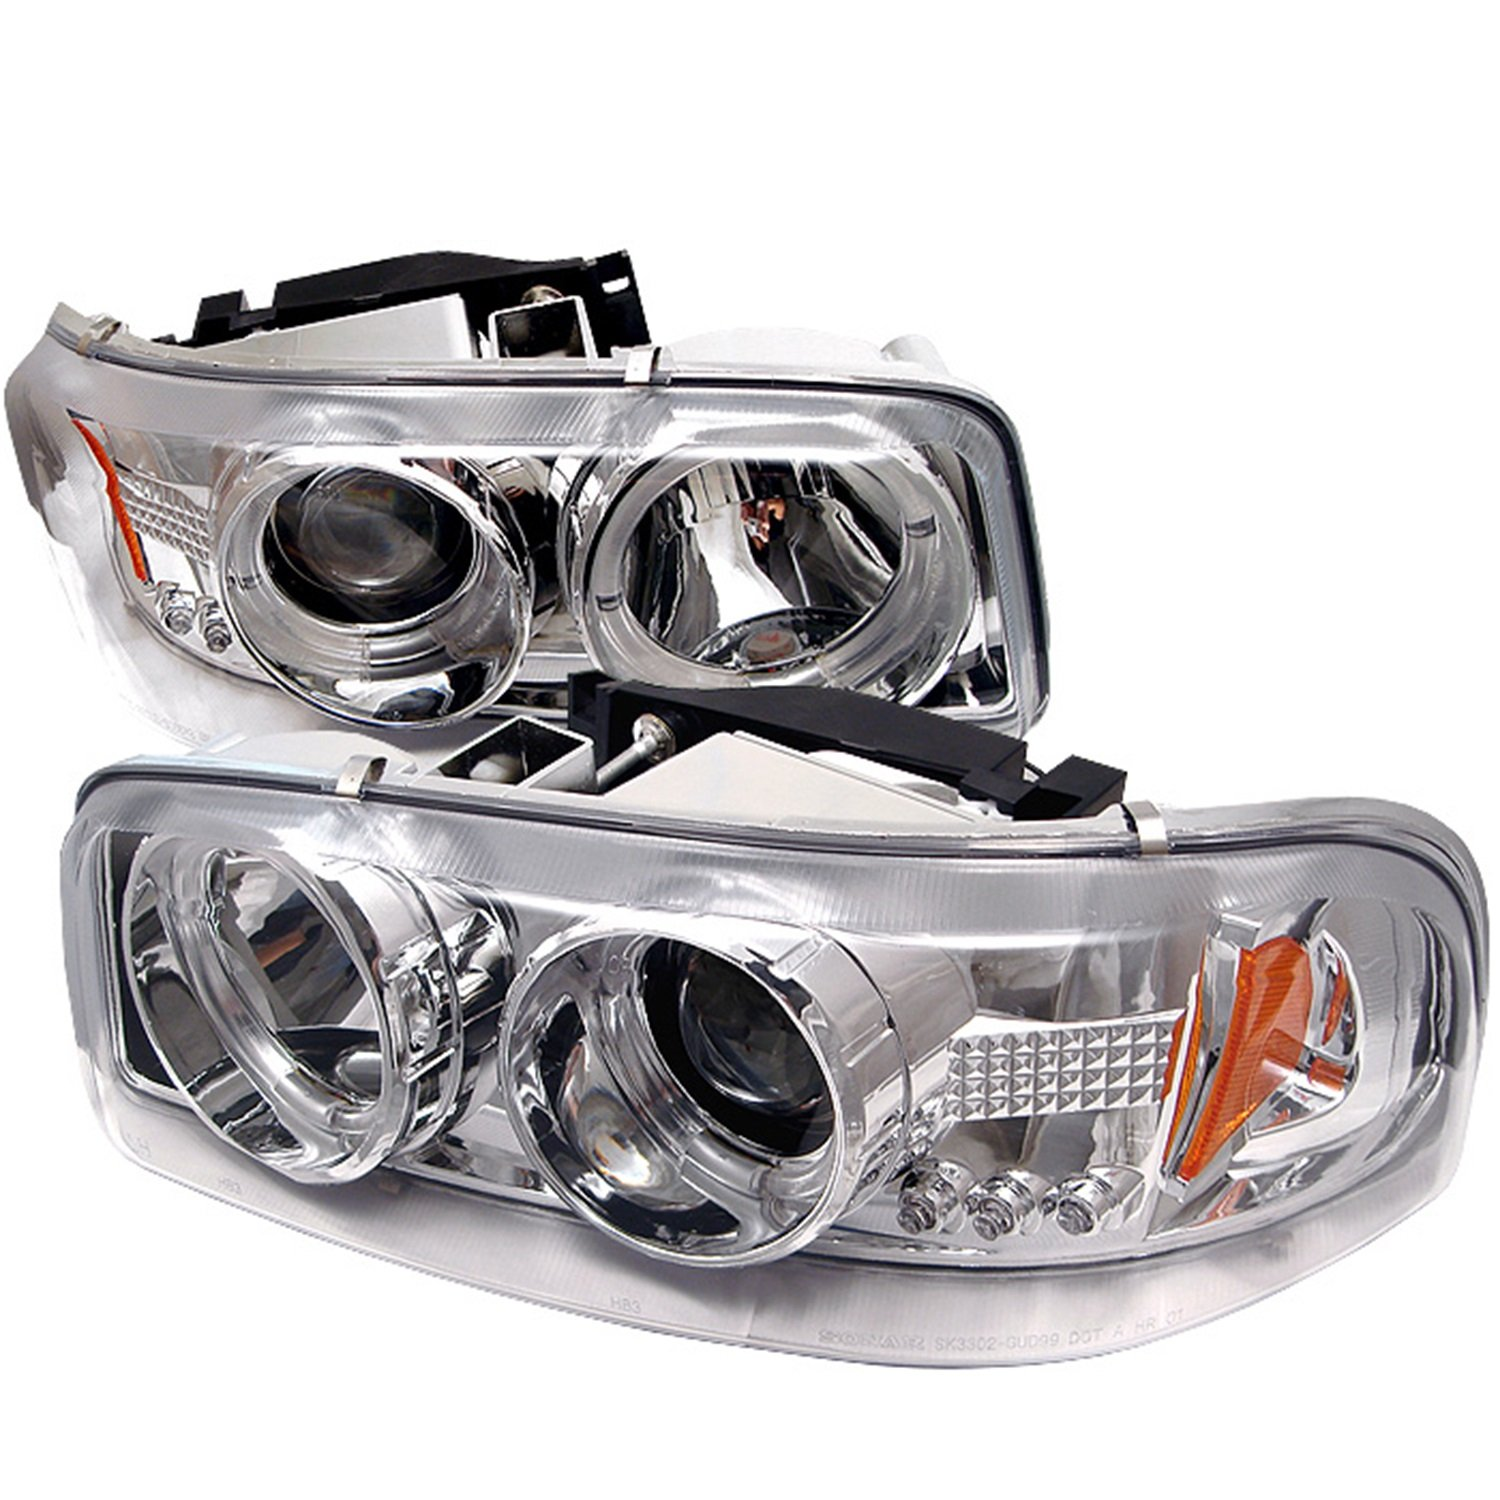 Amazon com spyder auto pro yd cde00 hl c gmc sierra 1500 2500 3500 gmc sierra denali chrome halo led projector headlight with replaceable leds automotive